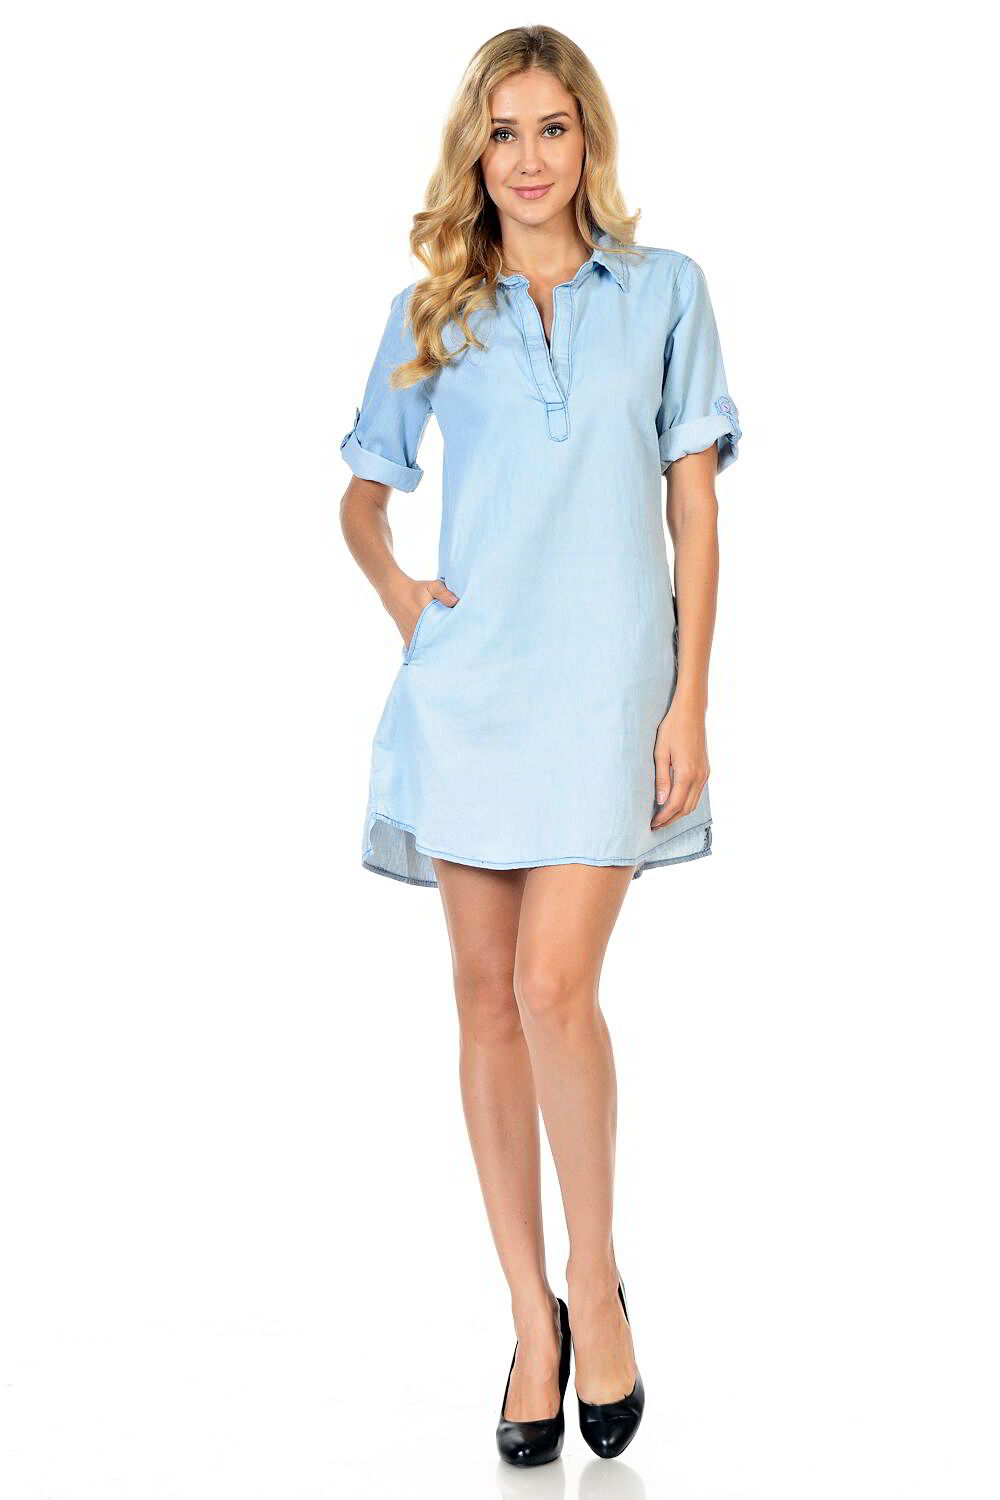 Sweet Look Women's Denim Blouse - Style N191 - Ann Et Craig